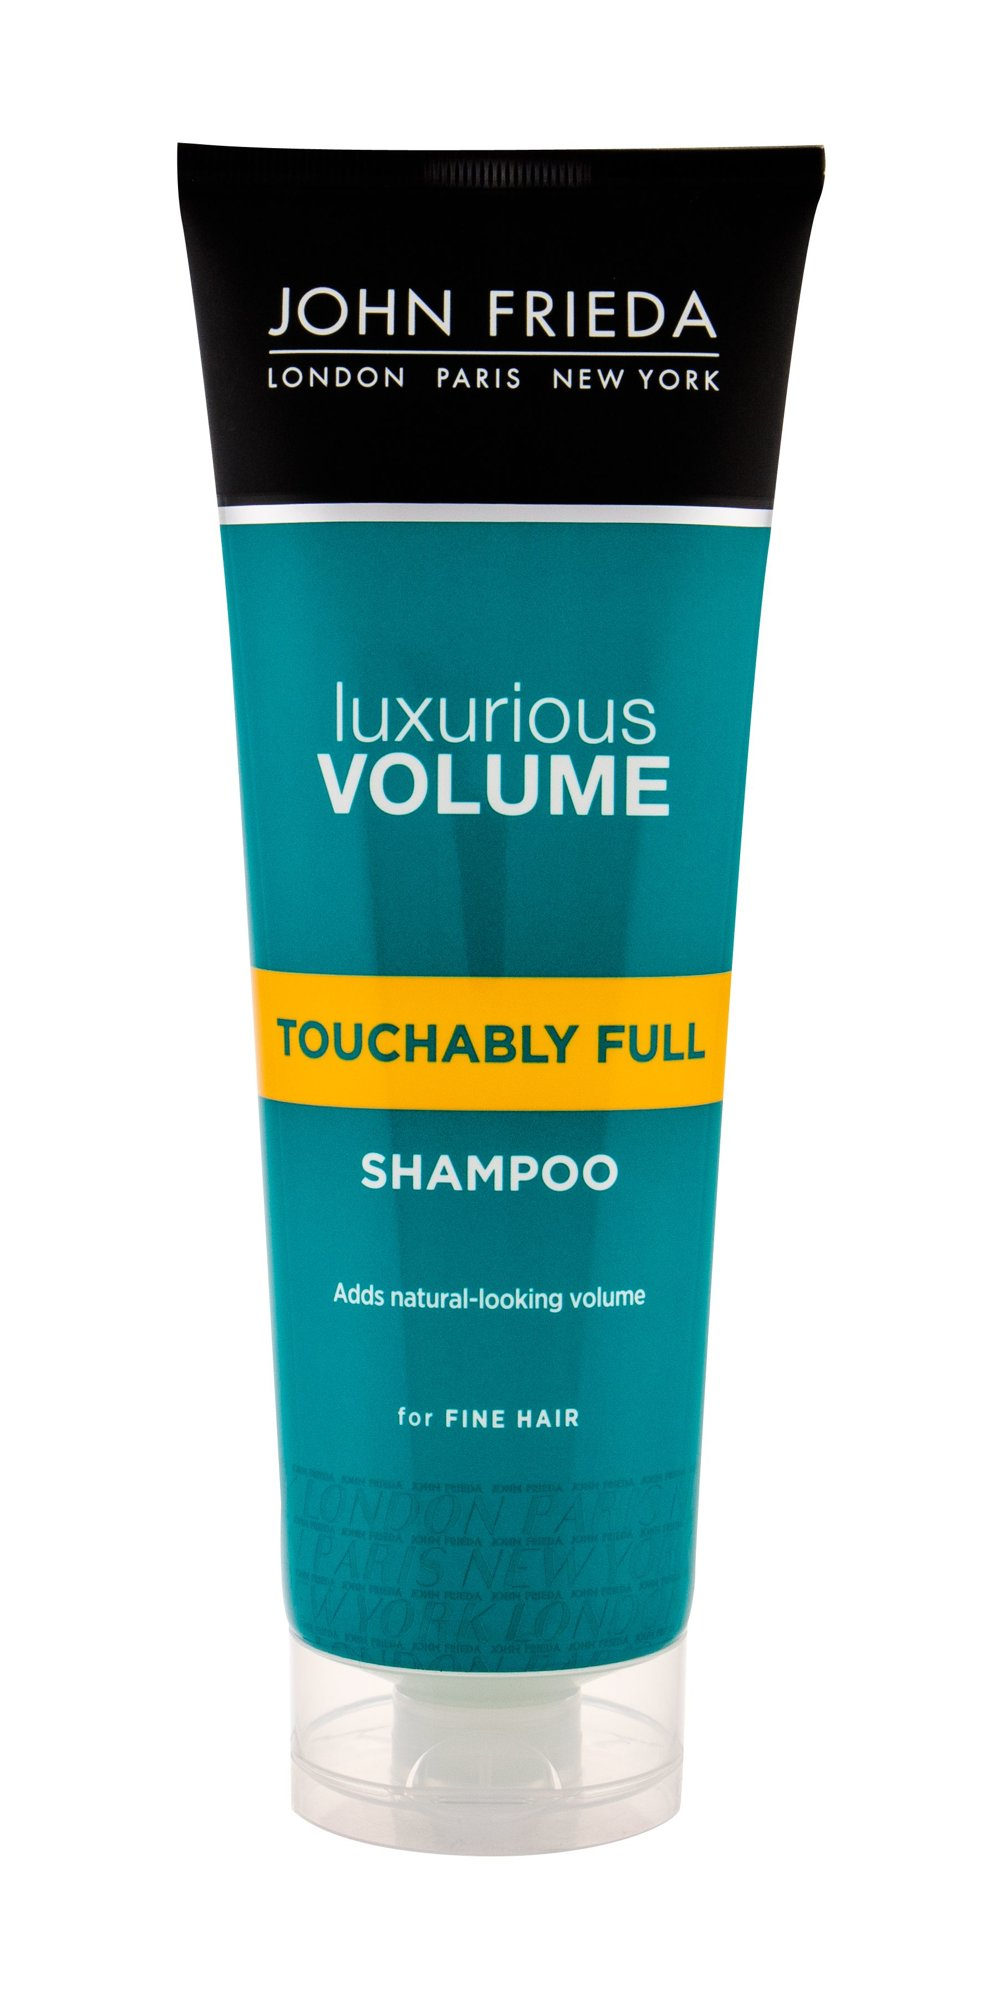 John Frieda Luxurious Volume Shampoo 250ml